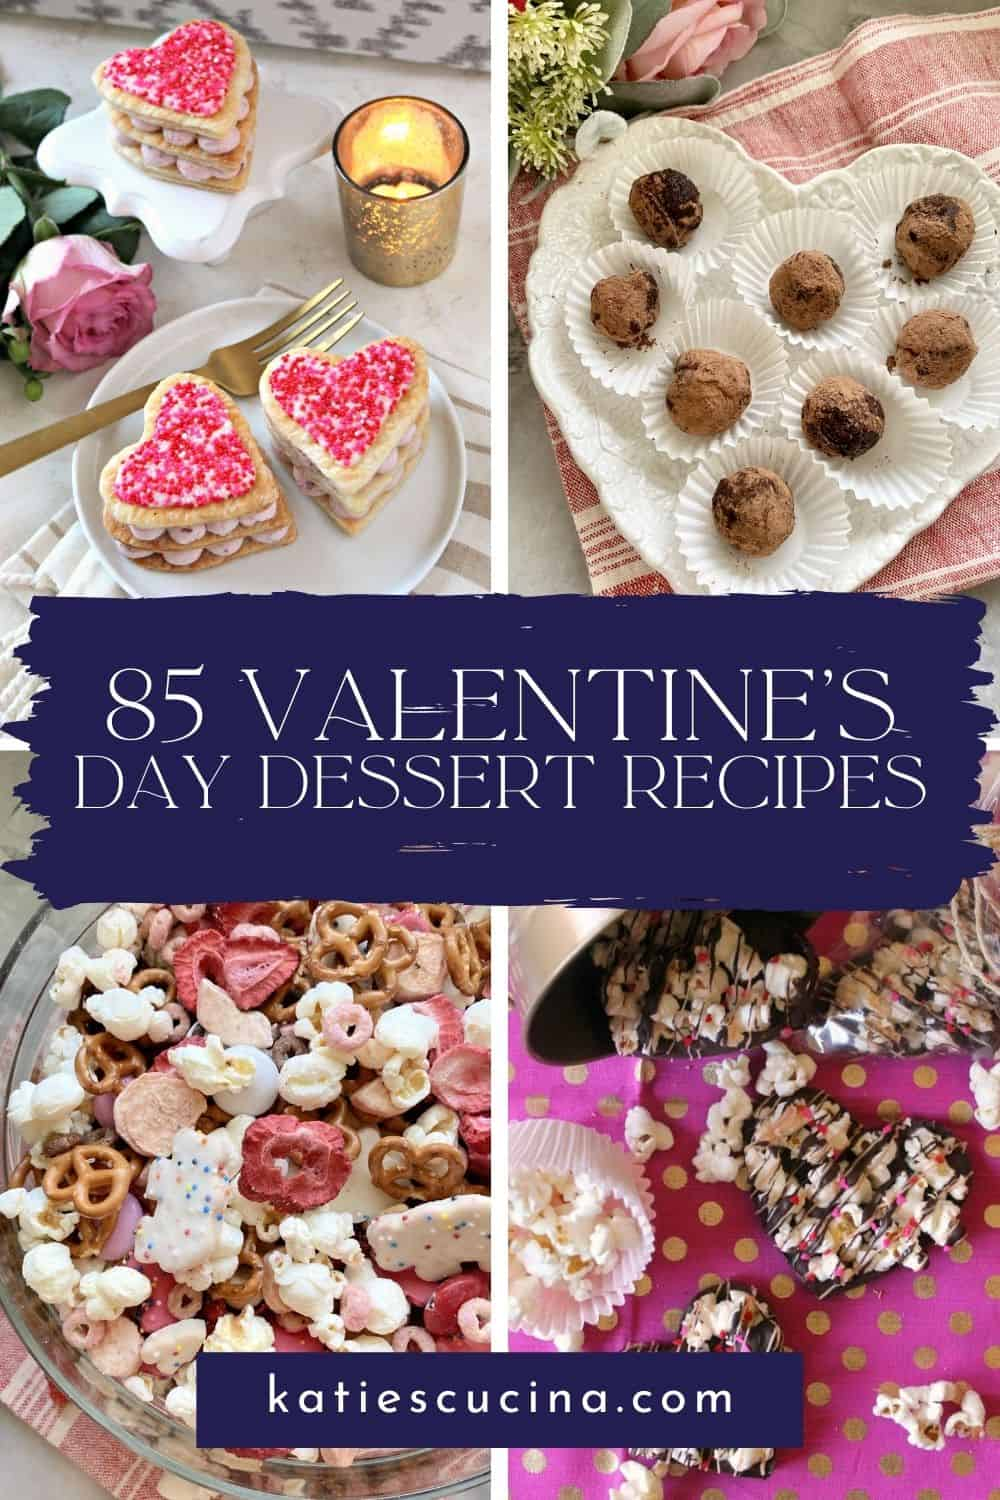 Four photo collage of heart shaped desserts with text on image for Pinterest.